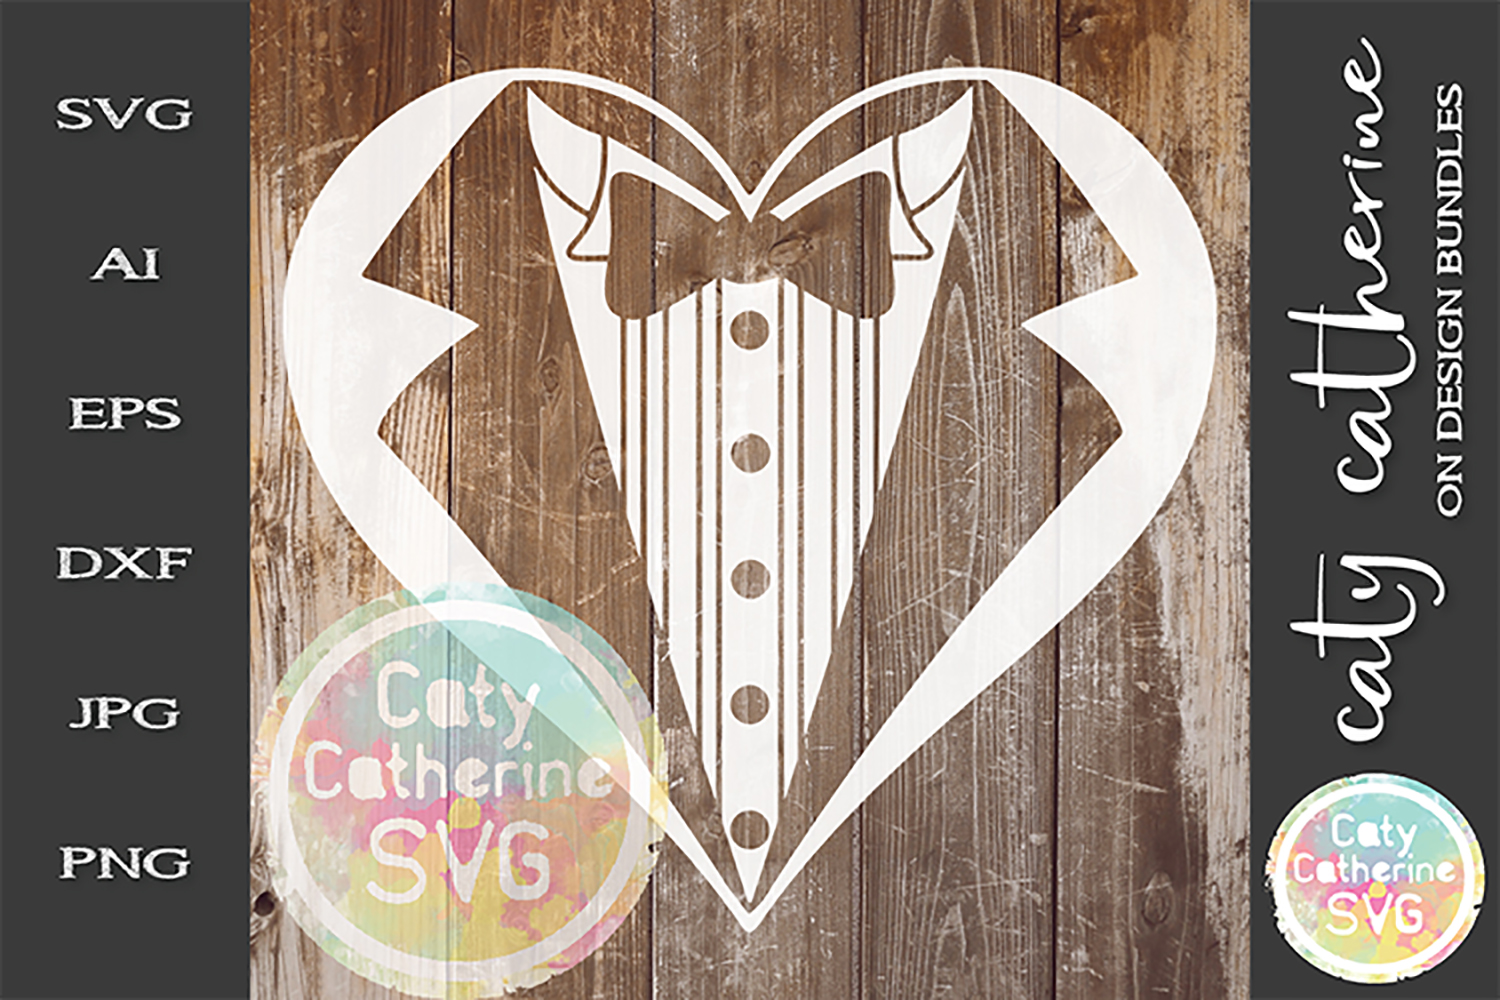 Wedding Groom Mr Tuxedo Heart SVG Cut File example image 1